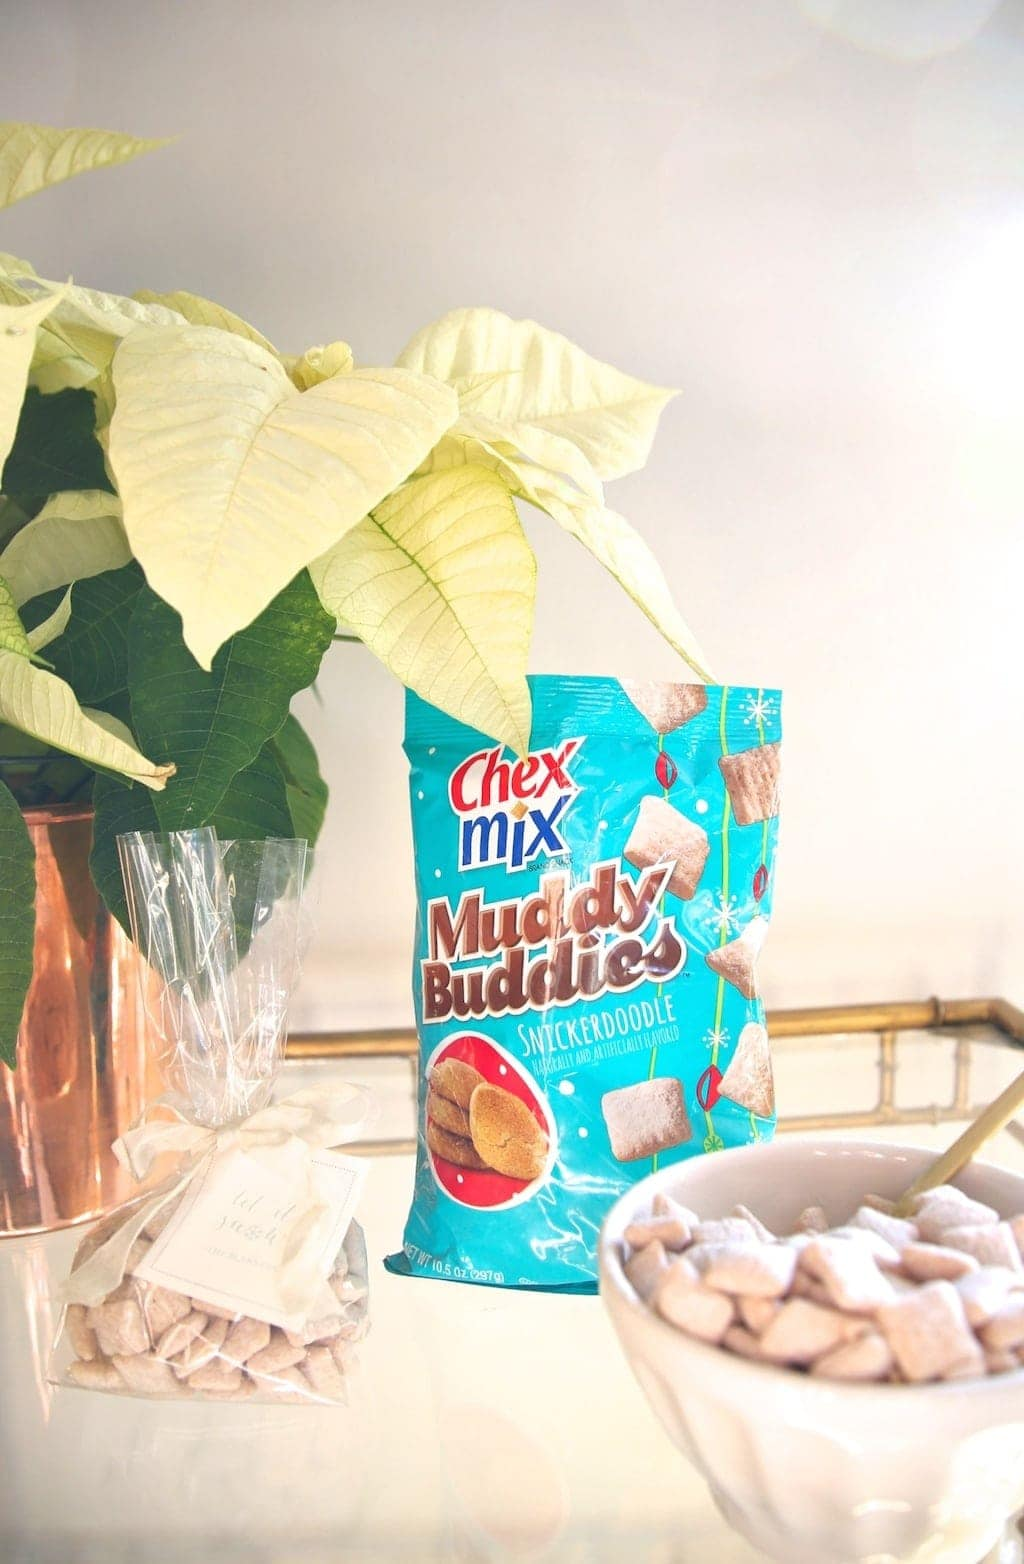 Chex Mix Muddy Buddies - tastes like homemade without the effort